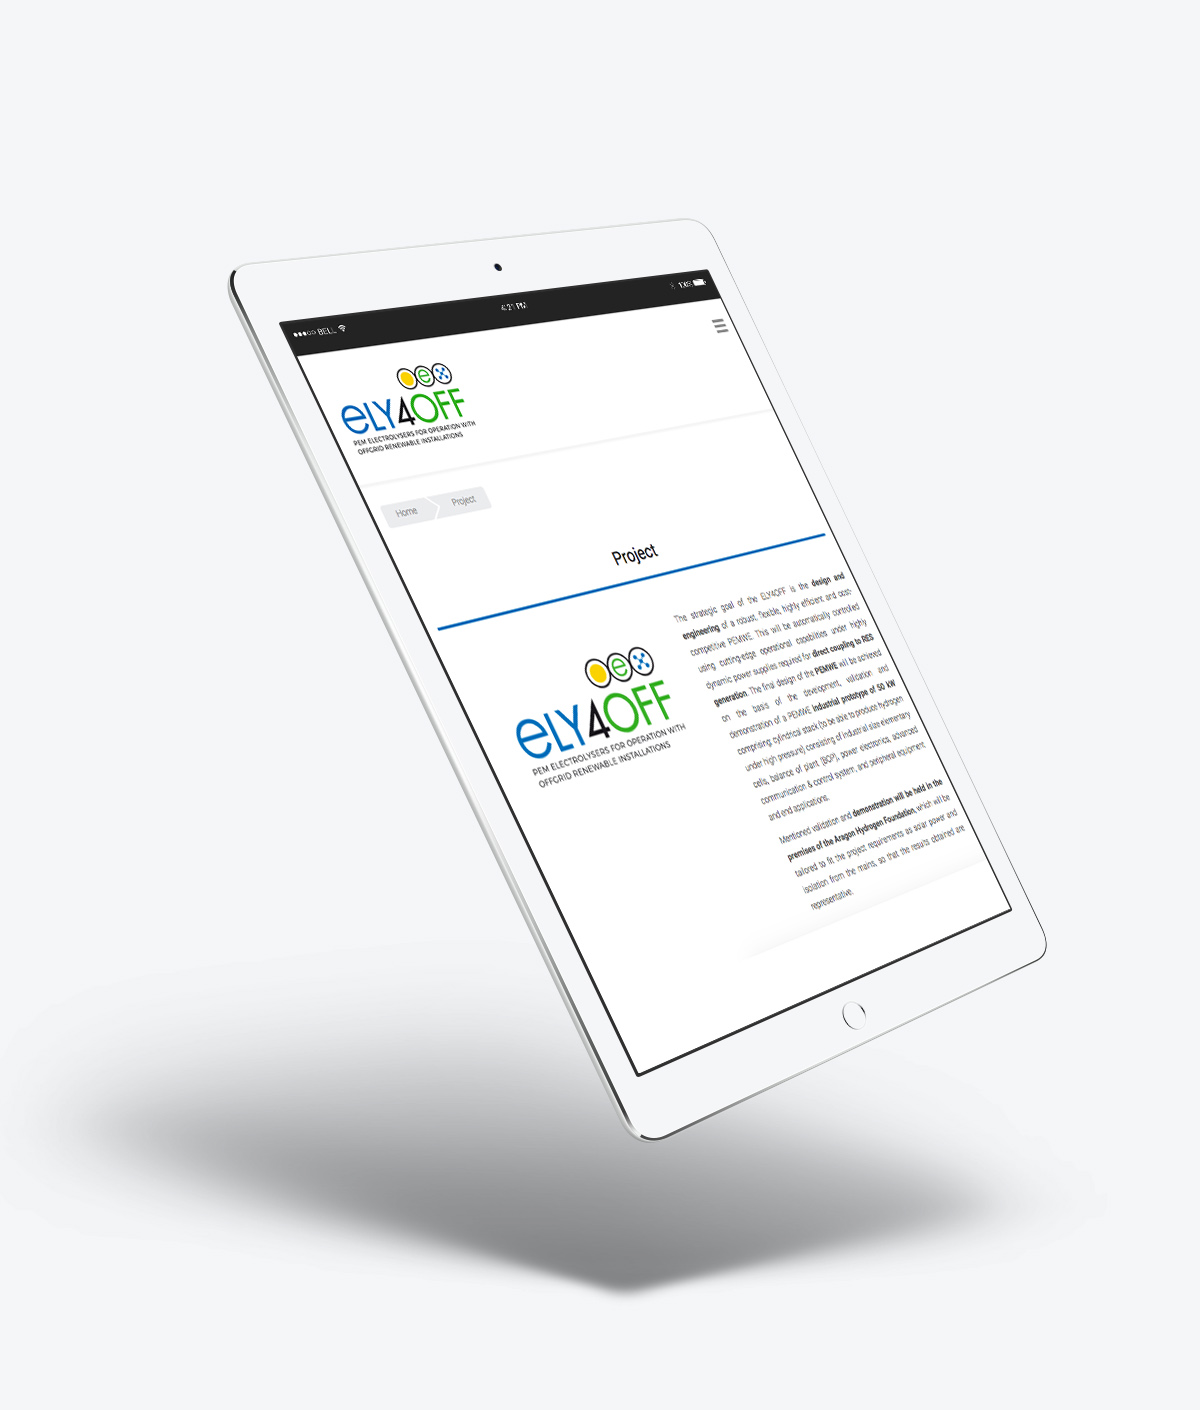 Web Proyecto Ely4off FHA Huesca